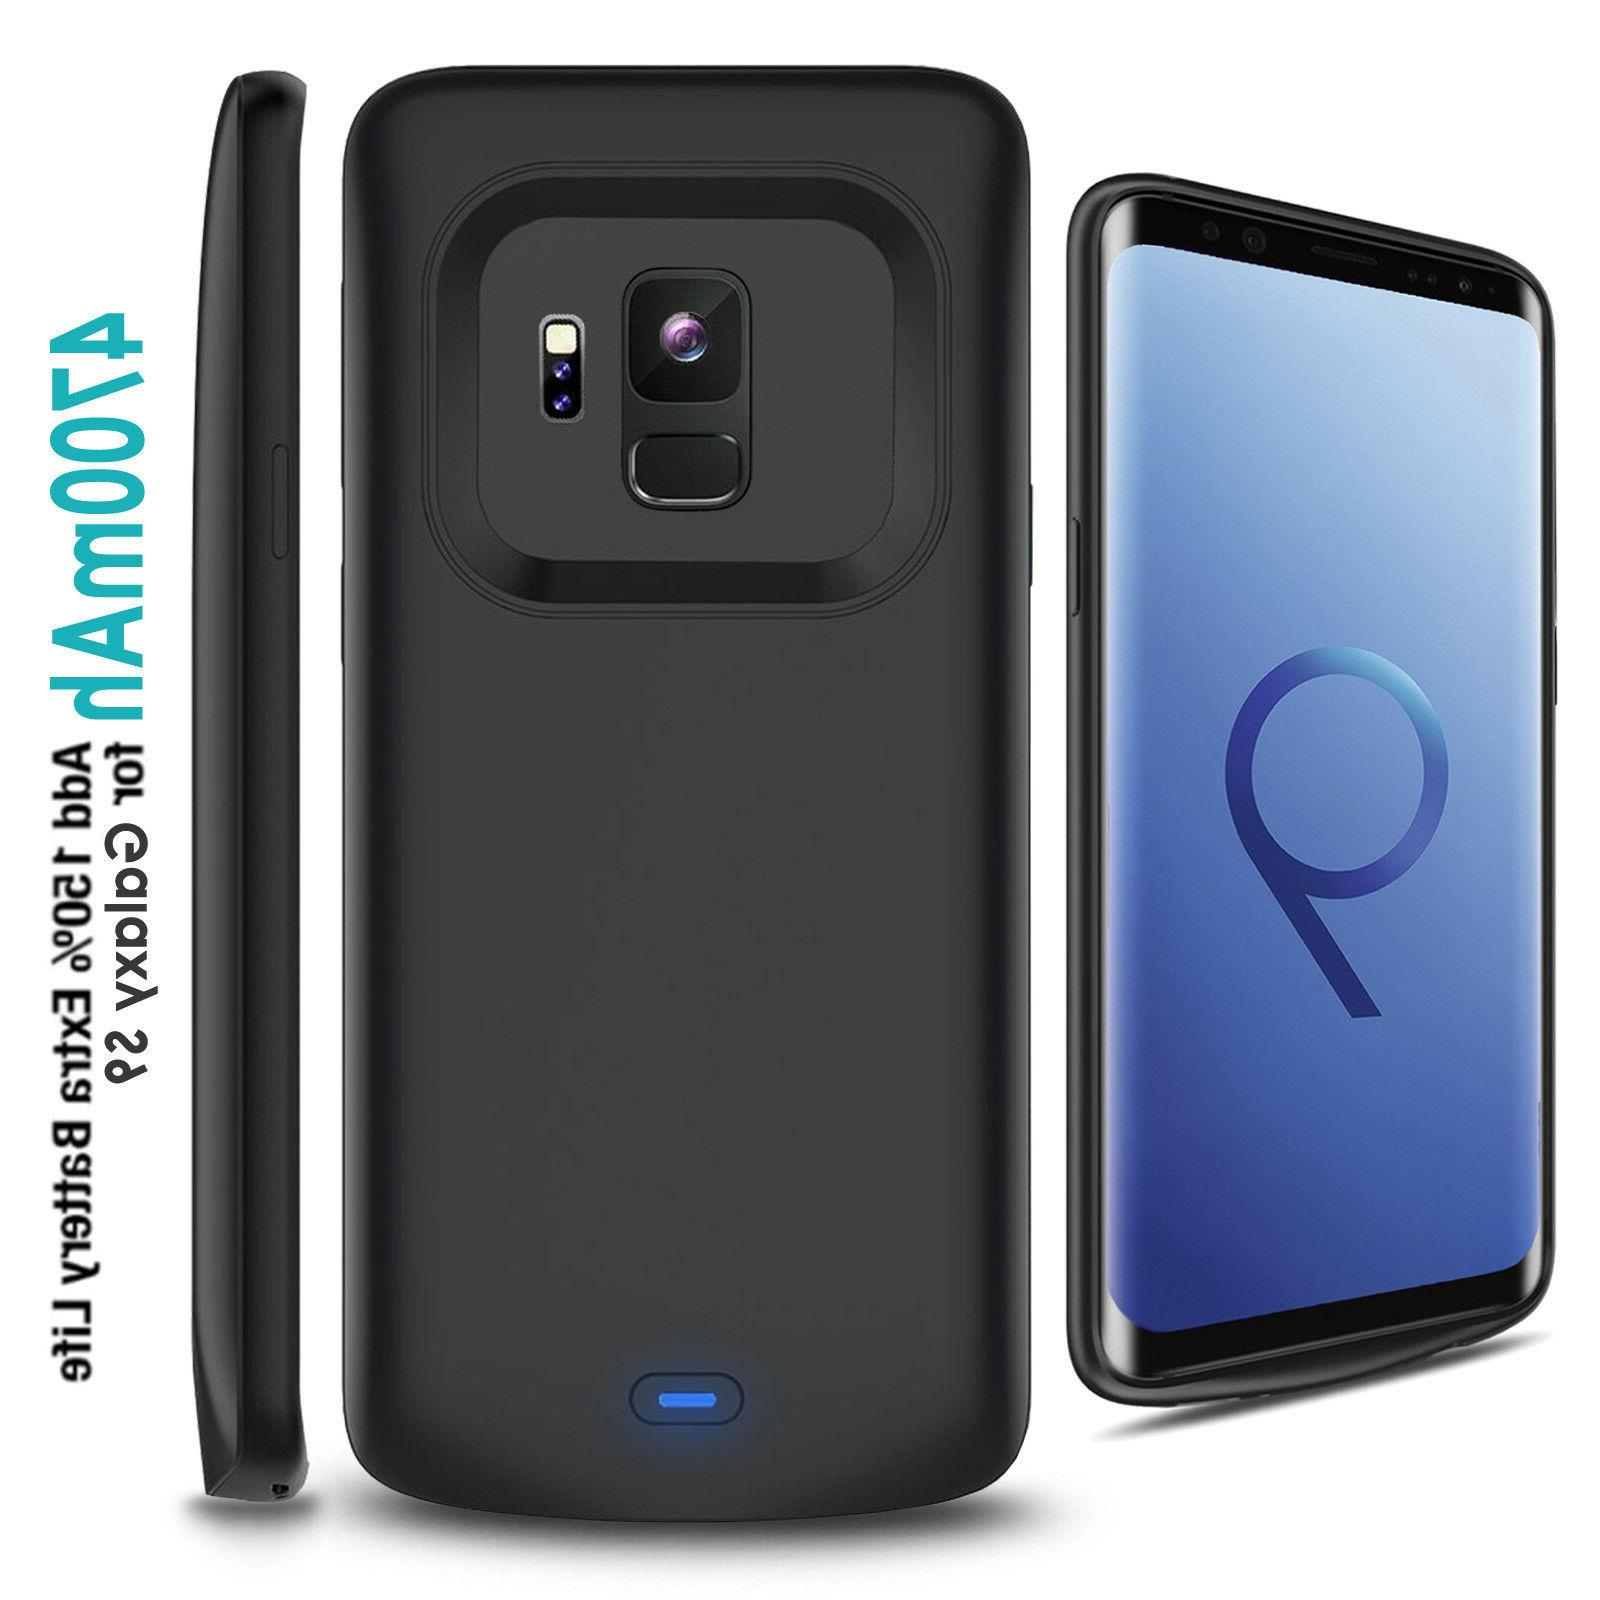 shockproof battery charging case portable power bank